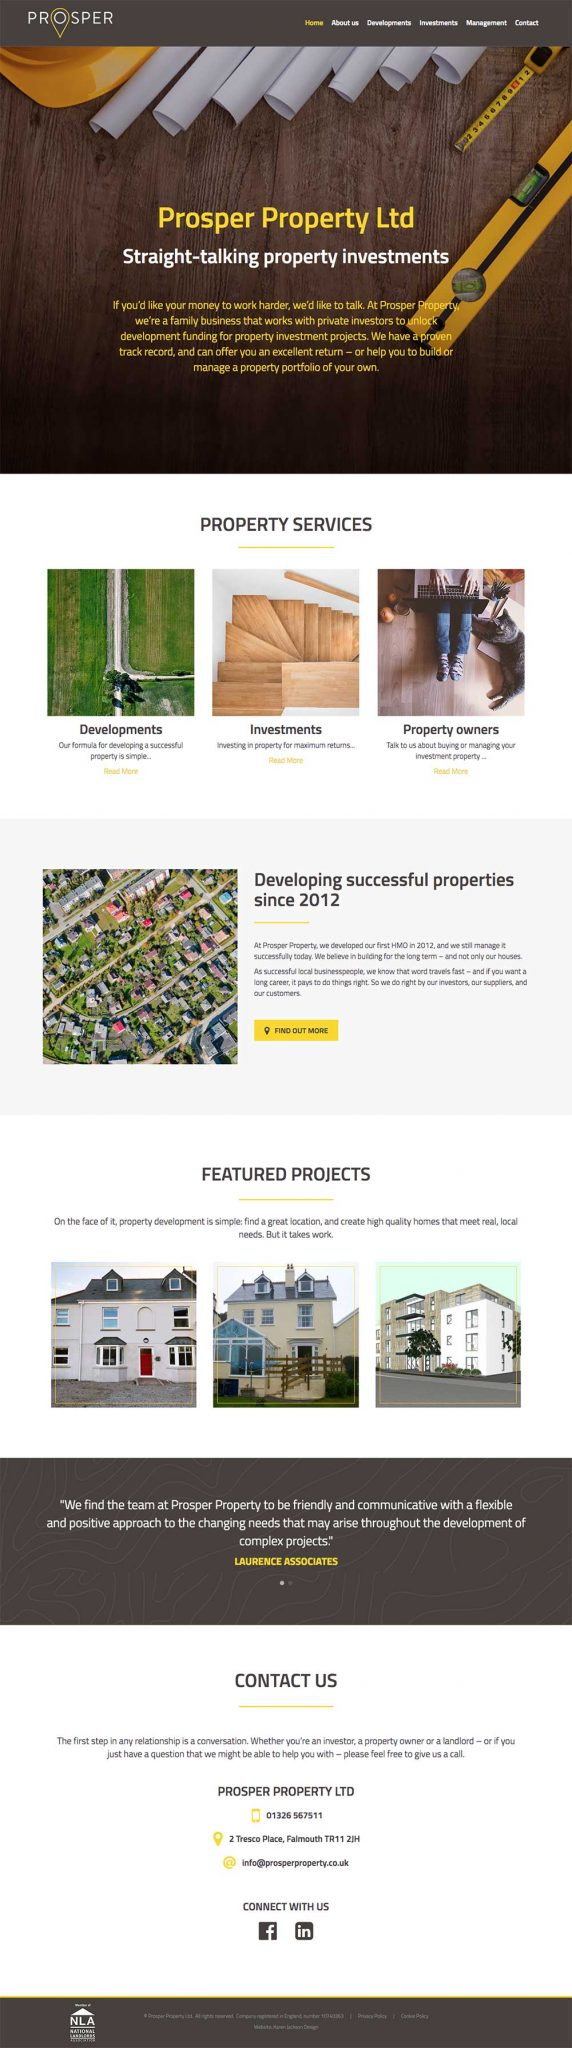 prosper-property-website-design